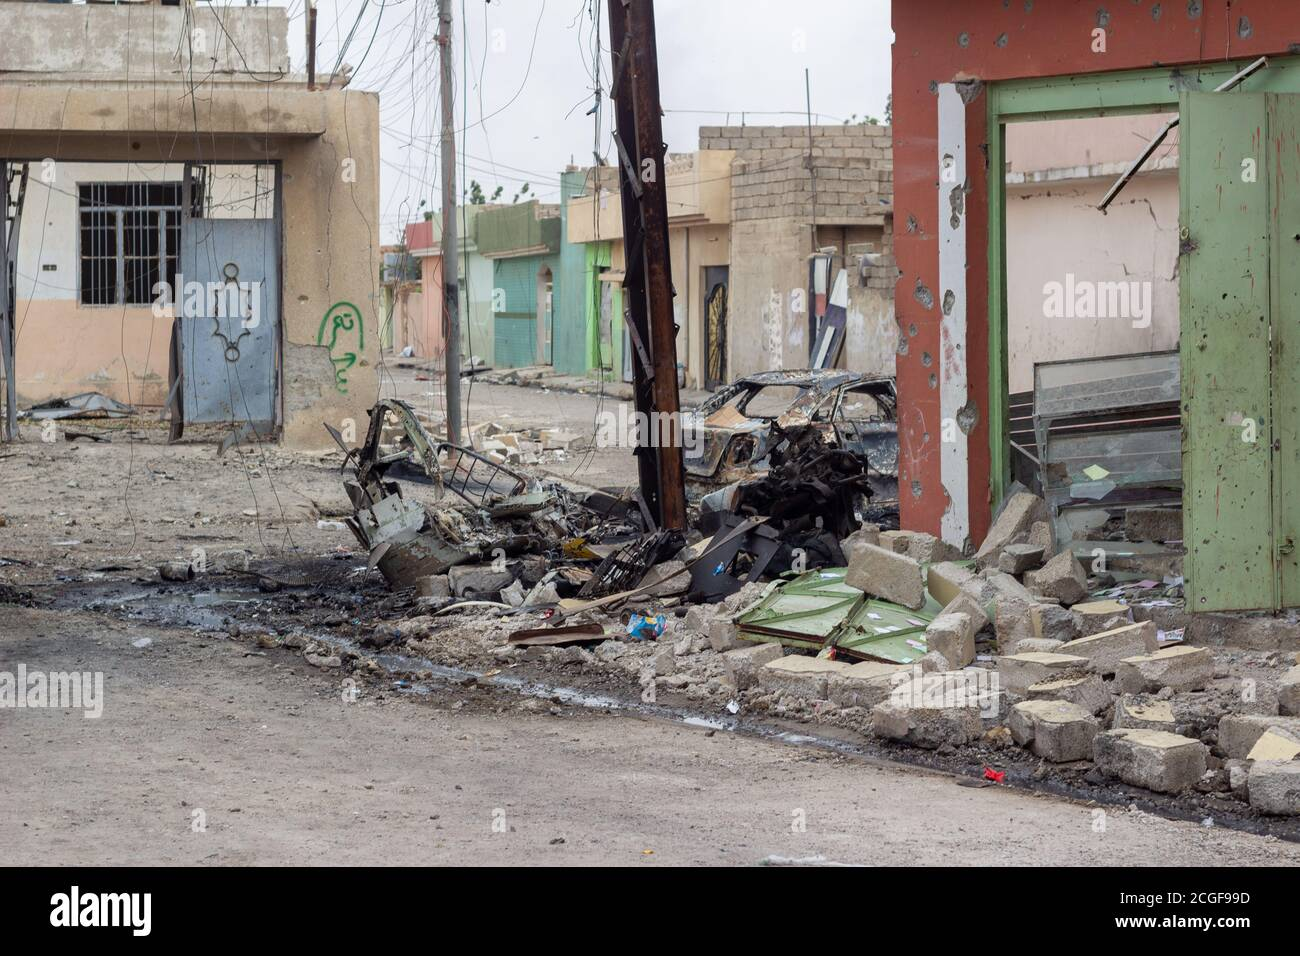 The scene of a destroyed Humvee in Al Bakir district of East Mosul, Iraq. Stock Photo